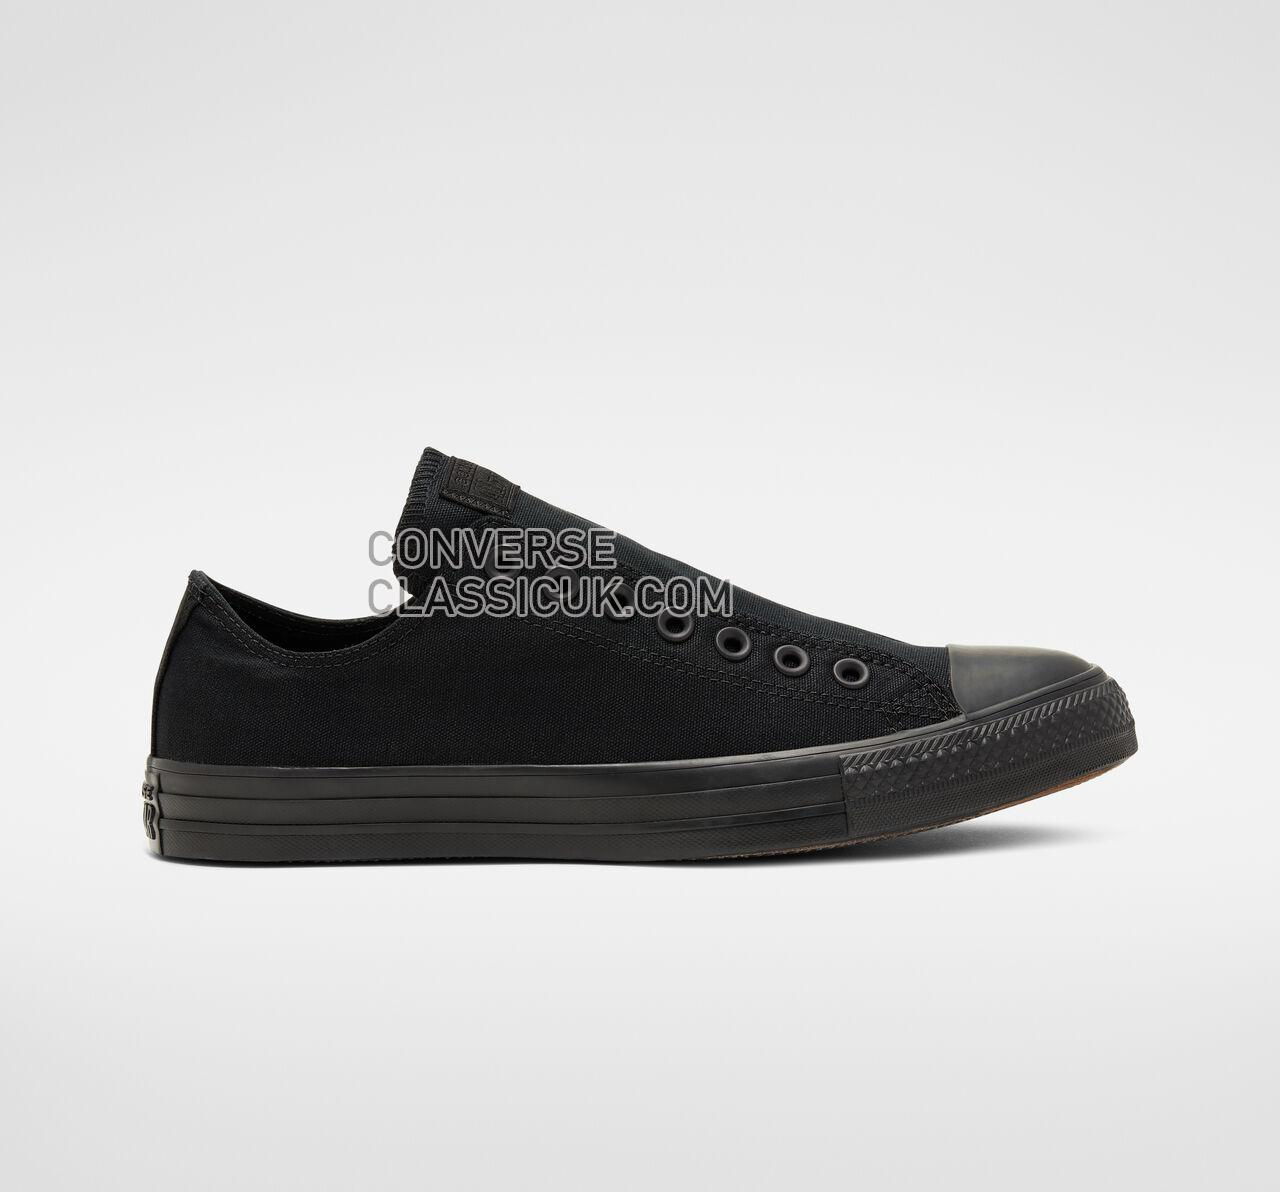 Converse Chuck Taylor All Star Slip Mens Womens Unisex 166396F Black/Black/Black Shoes